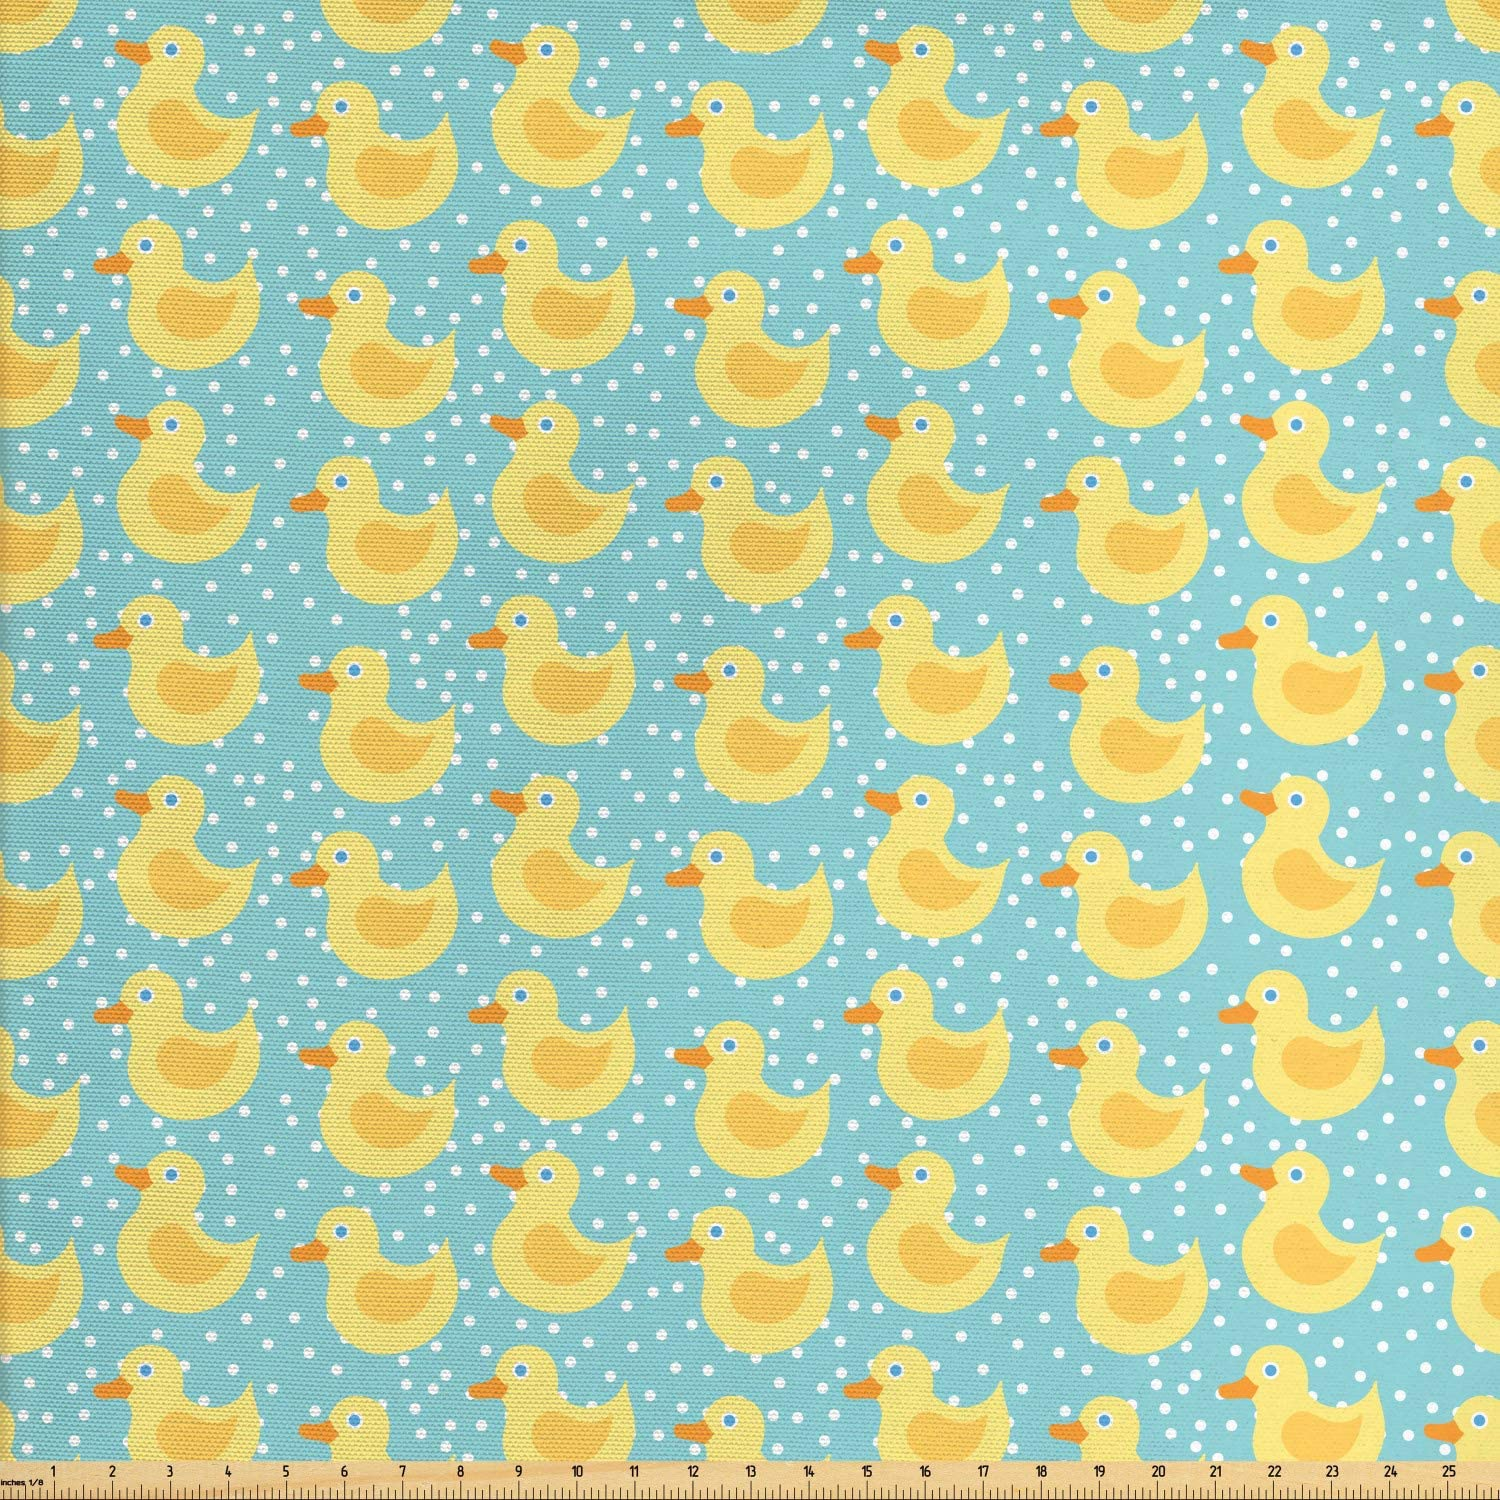 Lunarable Duckies Fabric by The Yard, Abstract Cartoon Style Illustration Blue Eyed Rubber Ducks with Dotted Background, Decorative Fabric for Upholstery and Home Accents, 1 Yard, Pastel Yellow